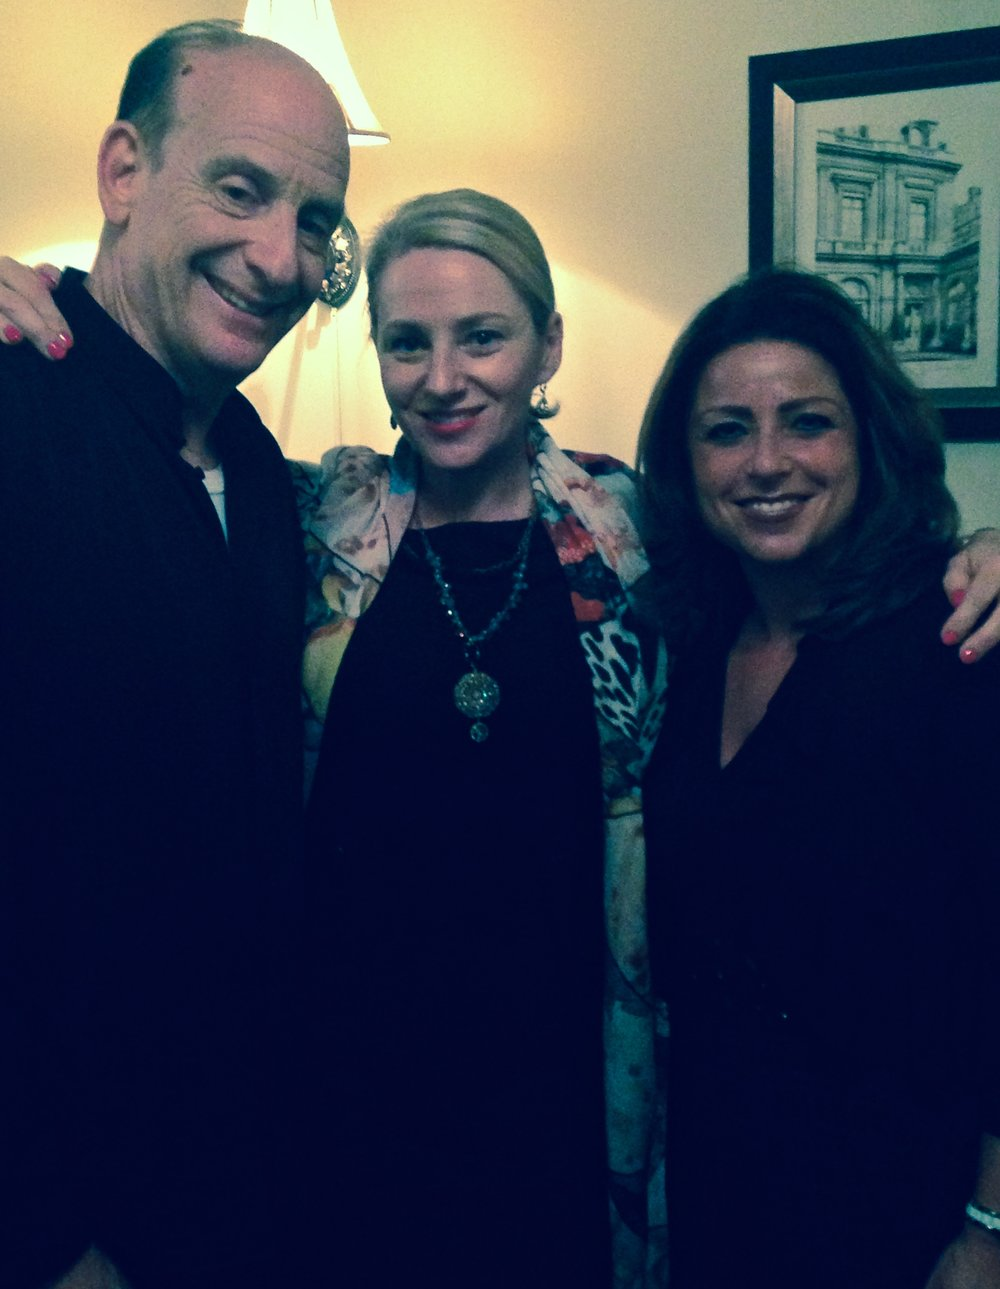 Mentor, teacher and amazing man Larry Rachleff and dear friend and stunning soprano Susan Dunn Rachleff